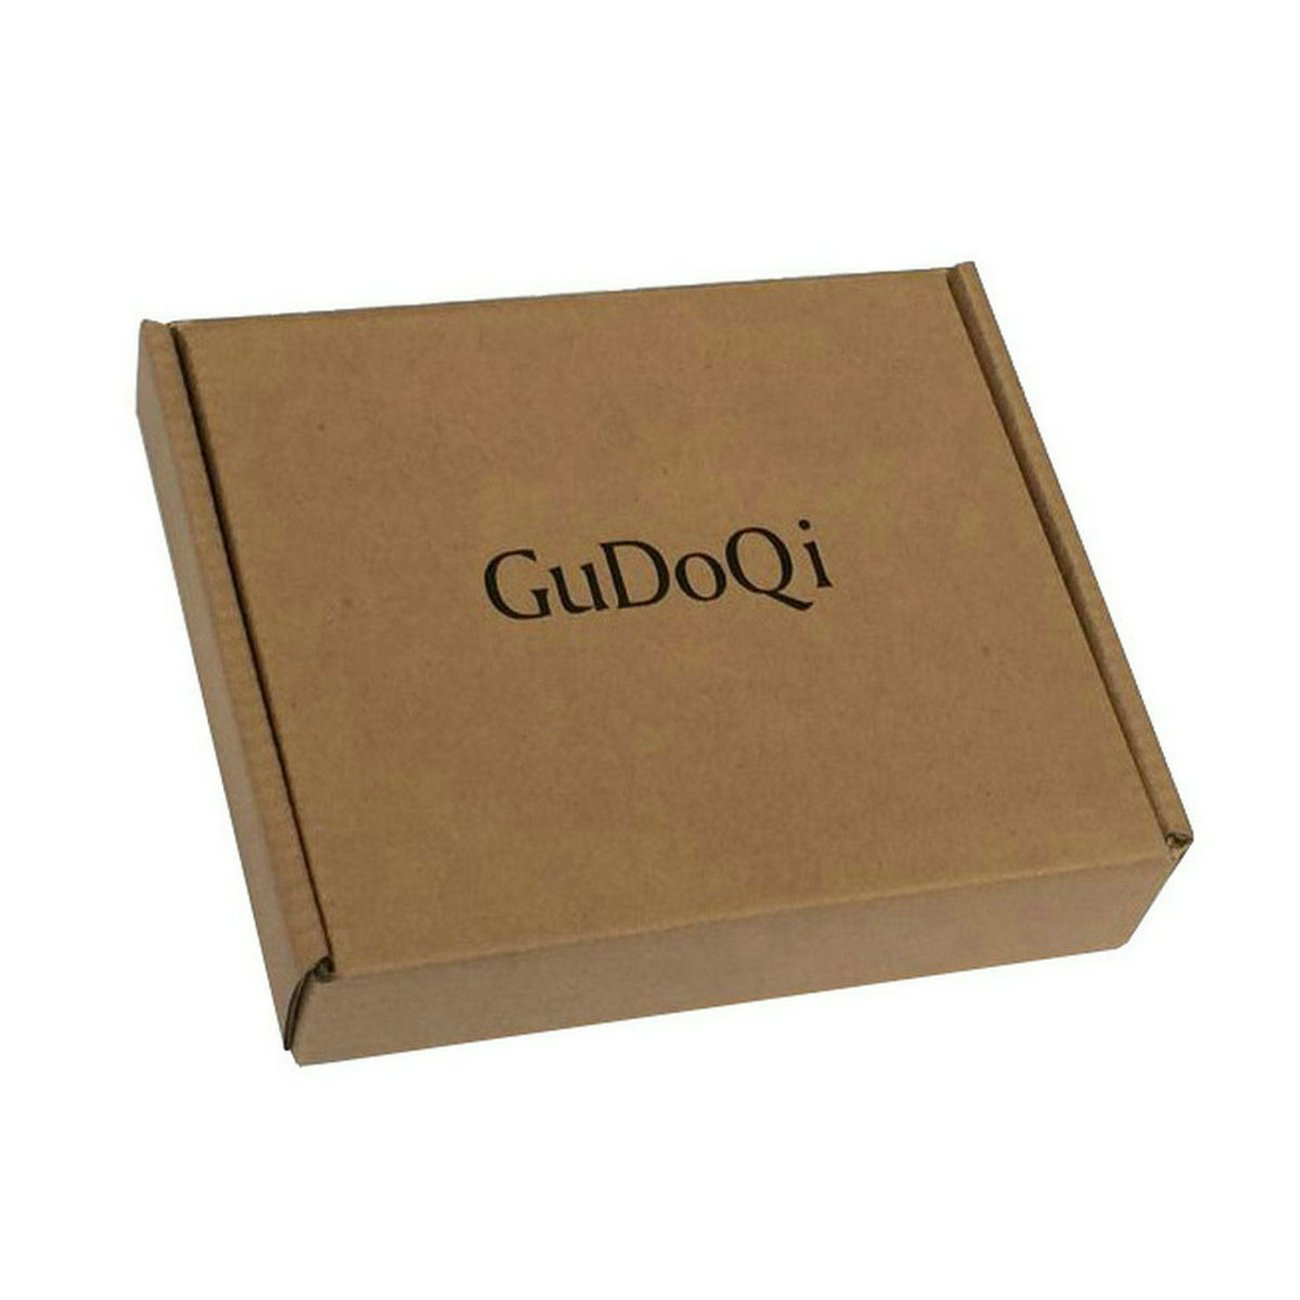 GuDoQi Window Thermometer Measure Temperature For External Home Car Use